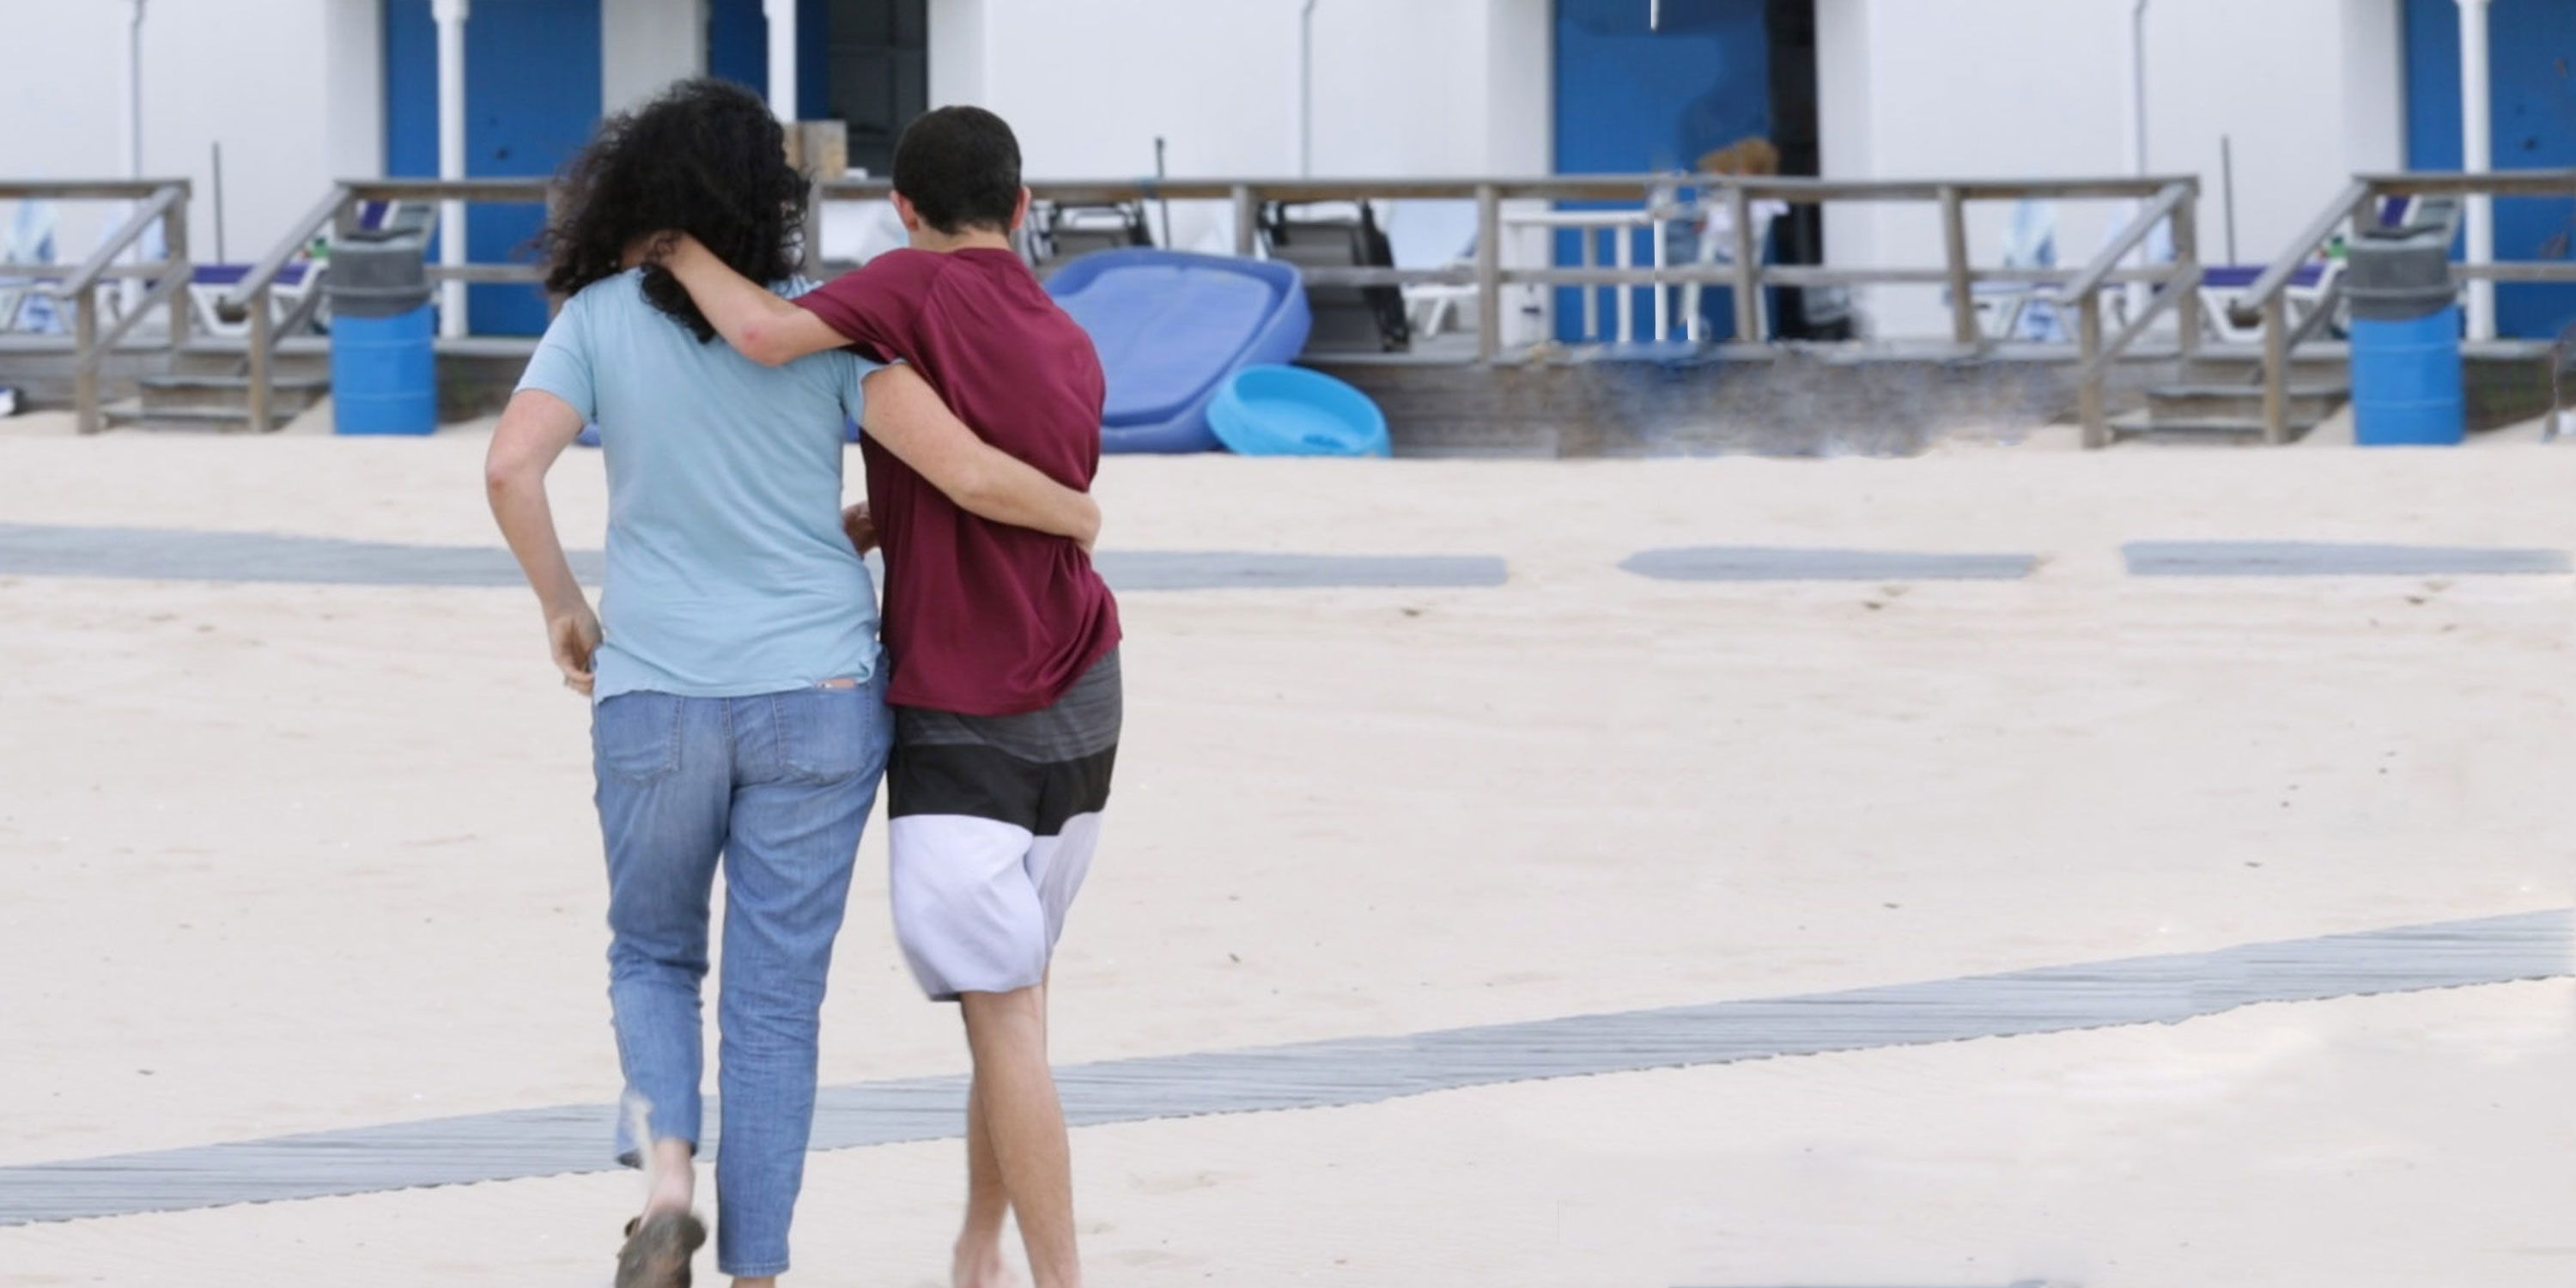 A woman wearing a blue shirt and jeans walks away from the camera with her arm around a young male teen wearing a red shirt and black & white shorts. His arm is around her shoulder.